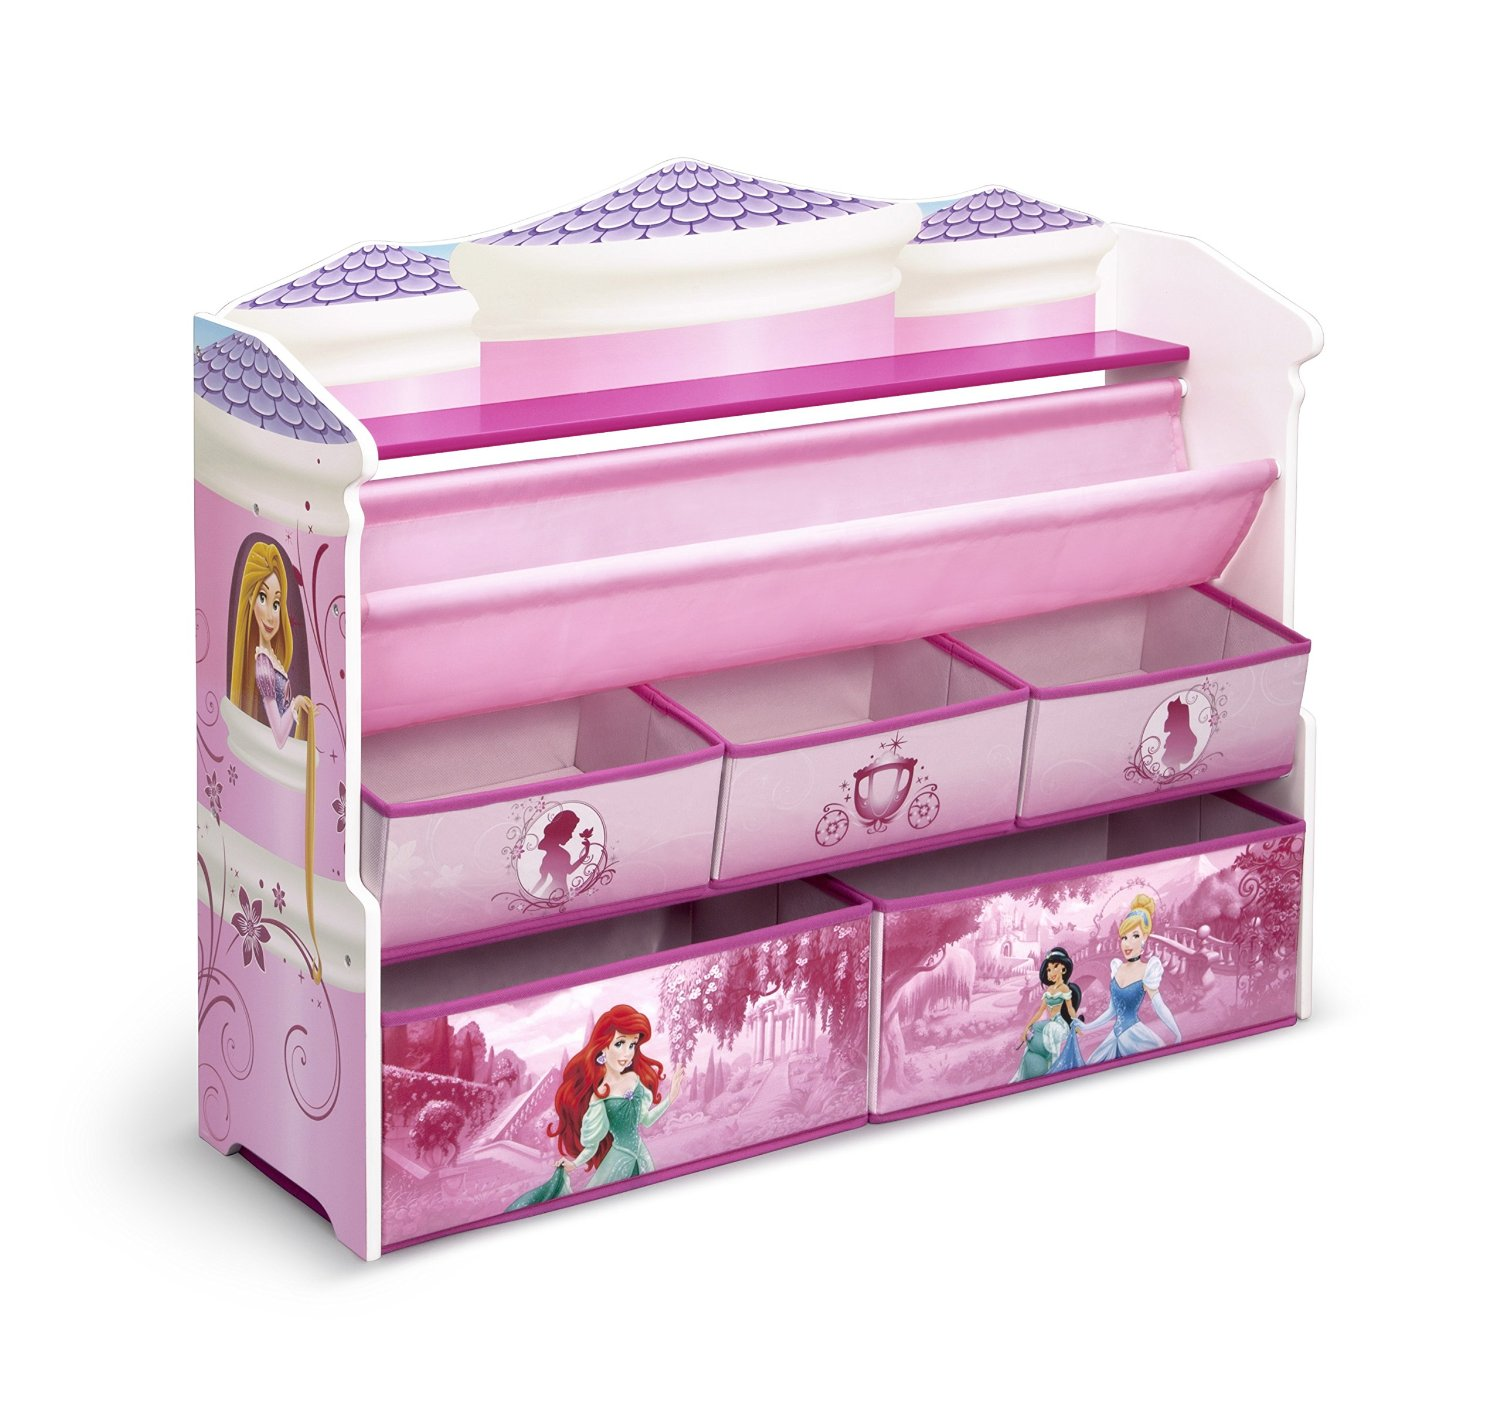 Disney Princess Toy Organizer